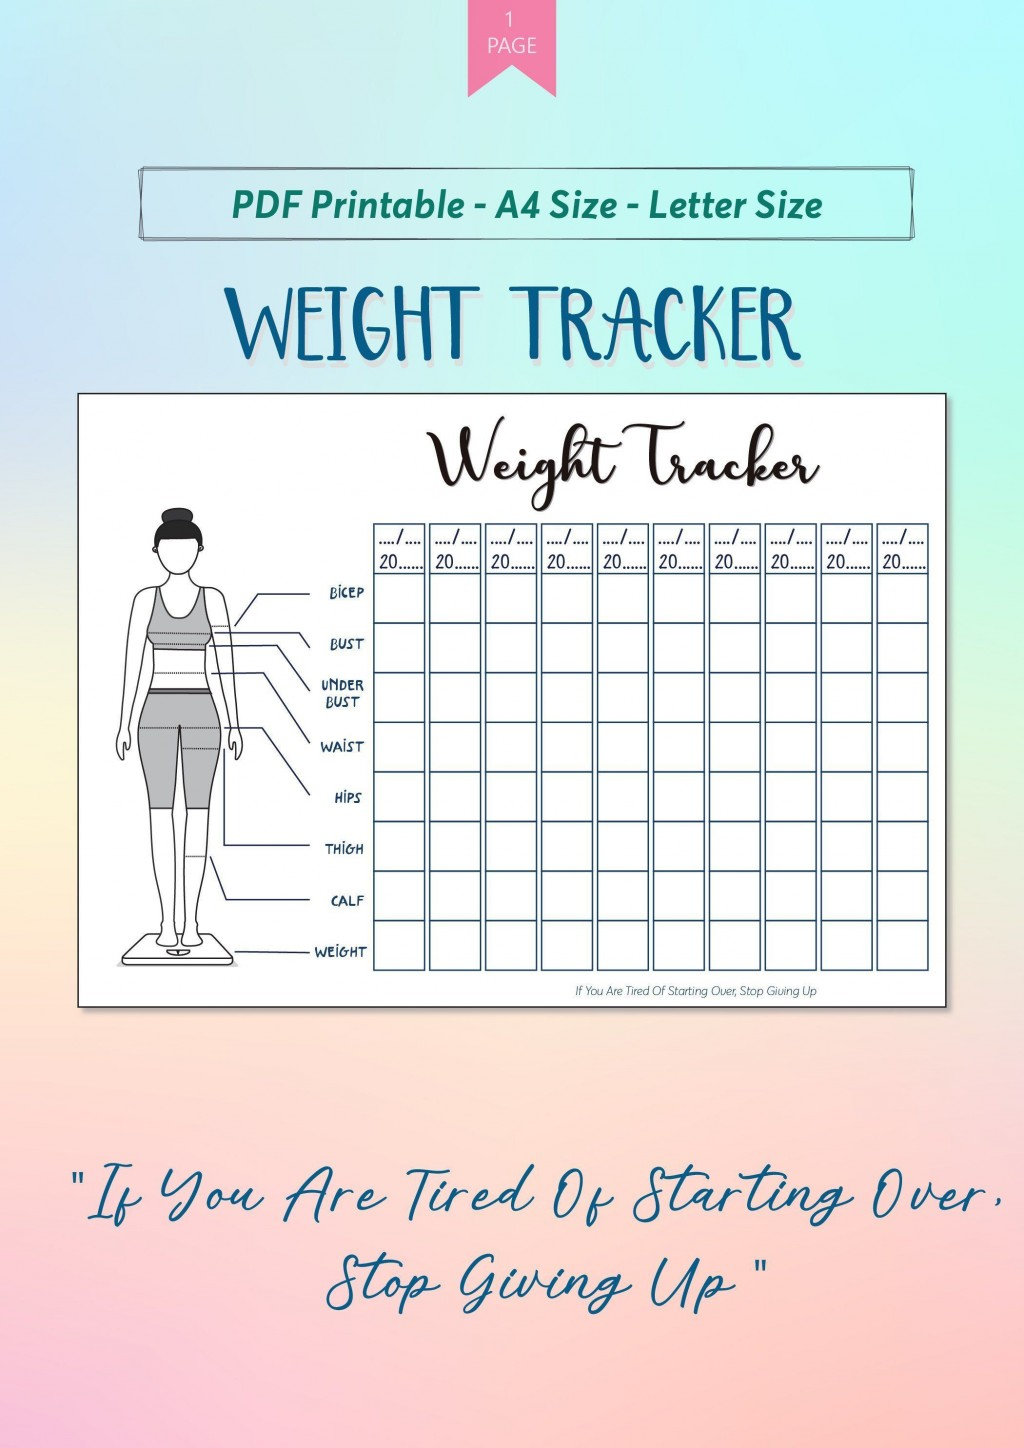 005 Fascinating Weight Los Tracker Template Sample  Weekly In Thi Body I Live Instagram 2019 2020Large